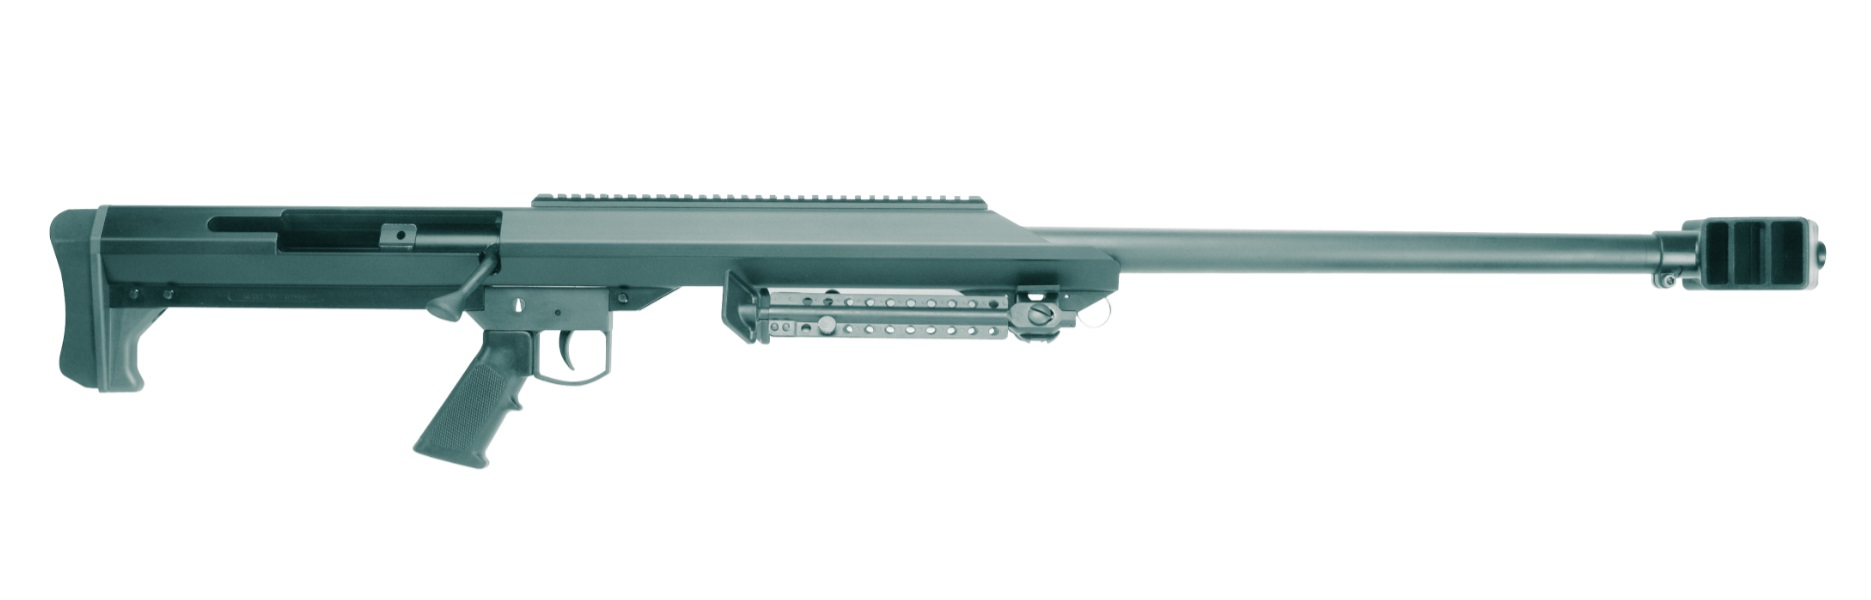 Barrett Firearms Model 99 416 Barrett